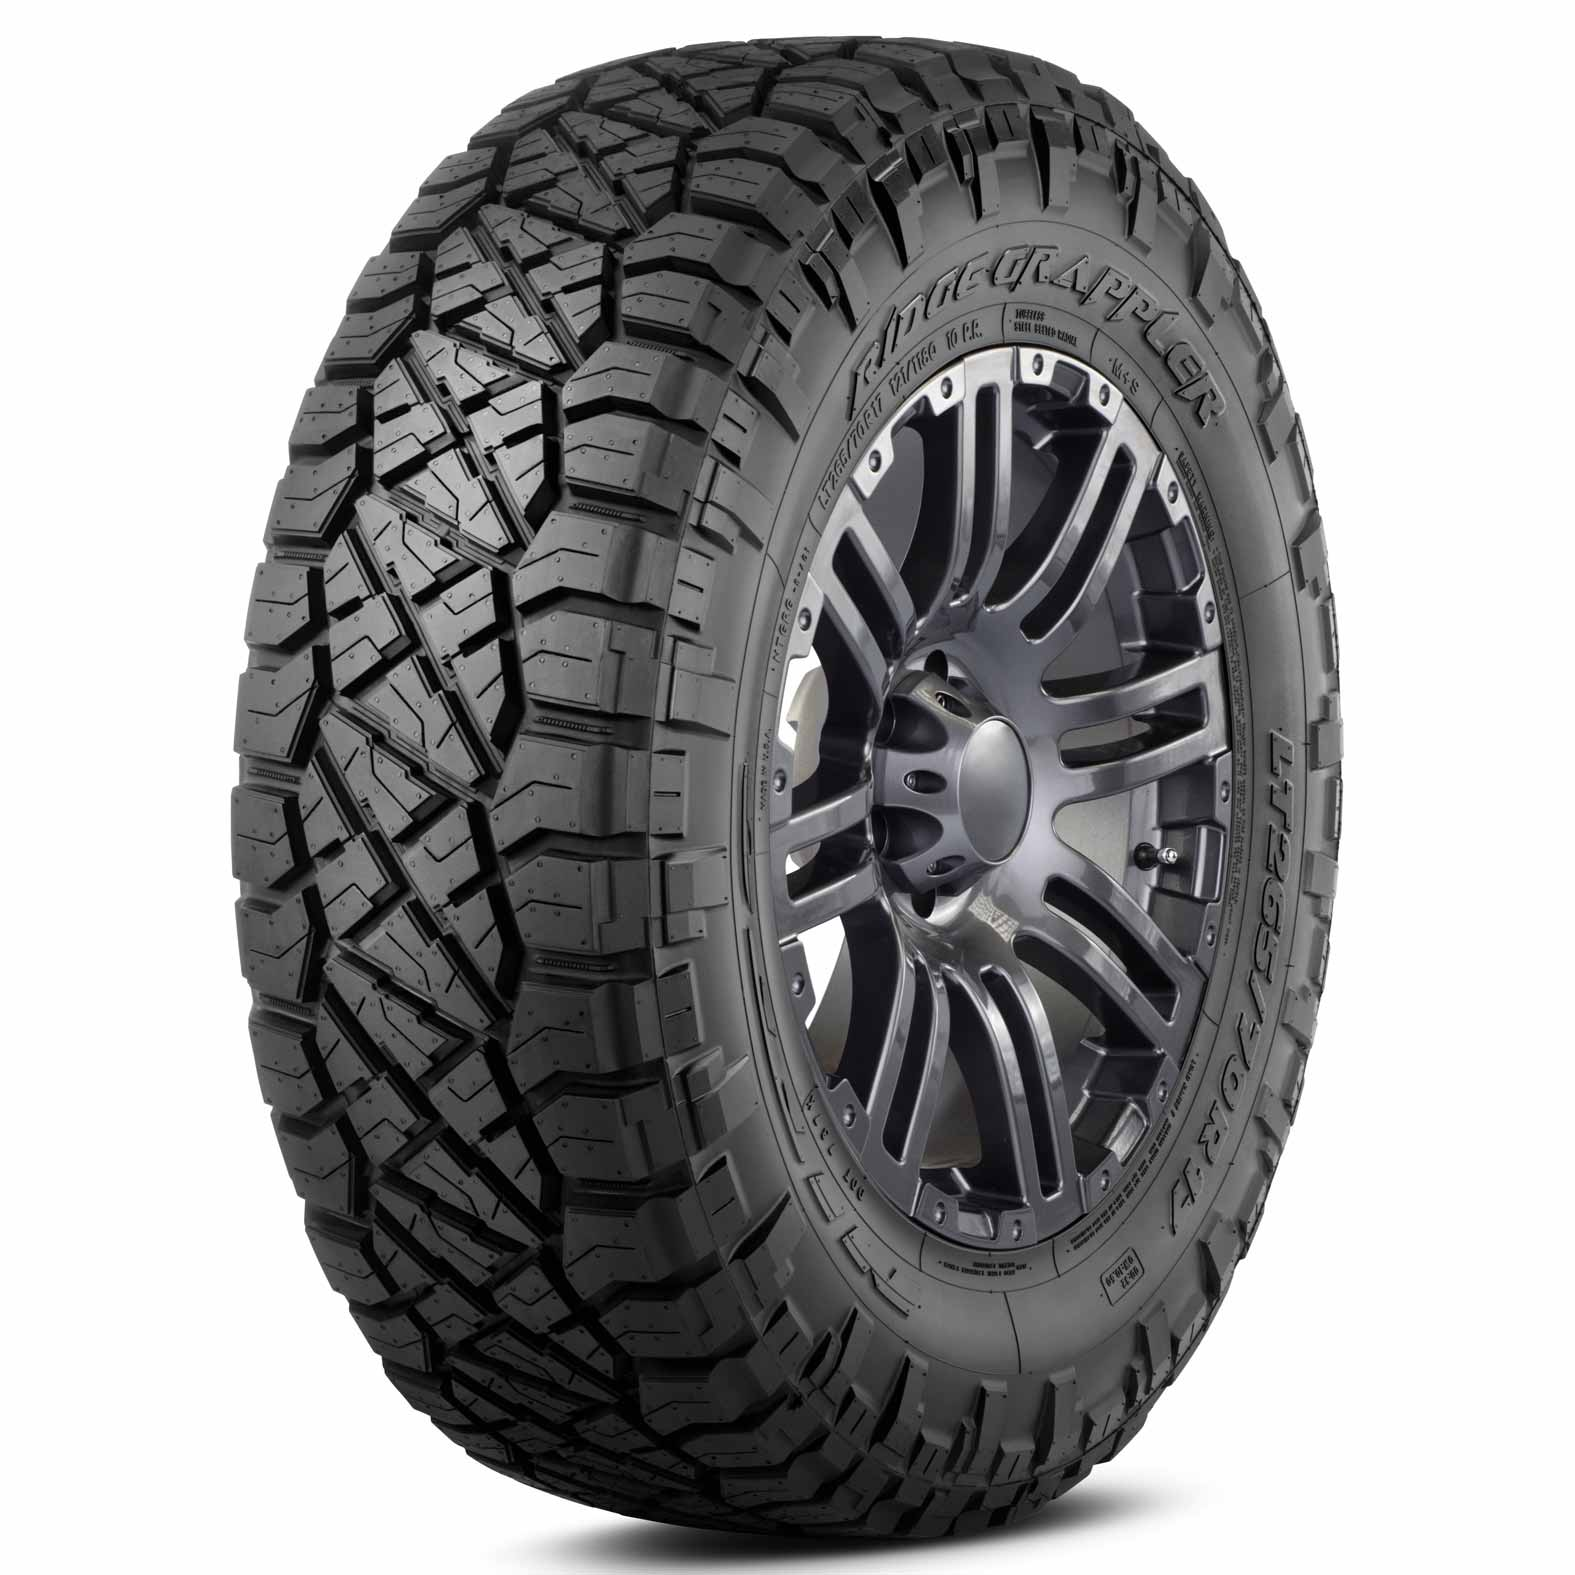 Nitto Ridge Grappler tire - angle